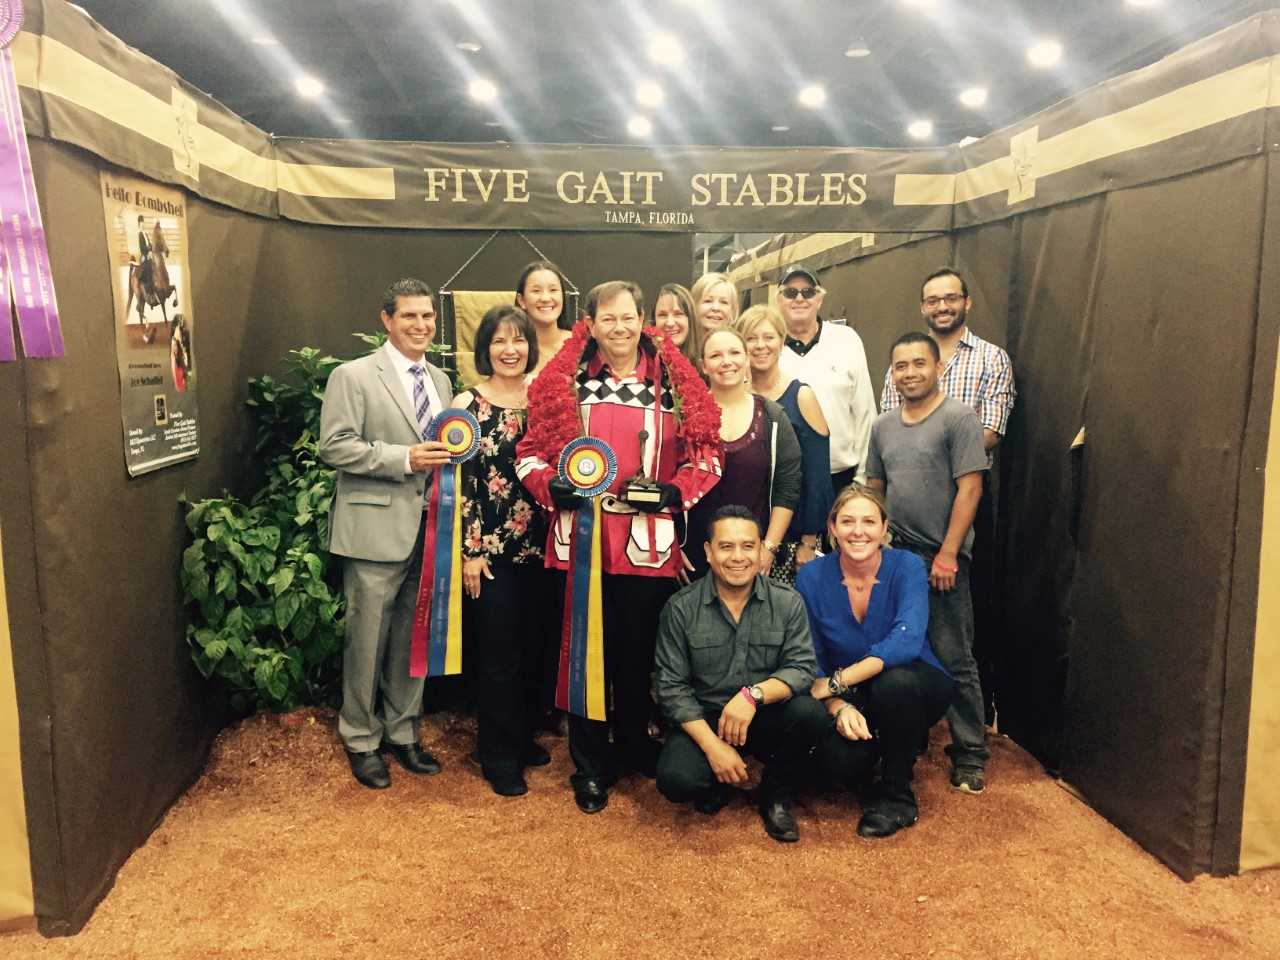 My wonderful Five Gait Stables team after my dad and IAMNOTACOW's championship win Friday night.